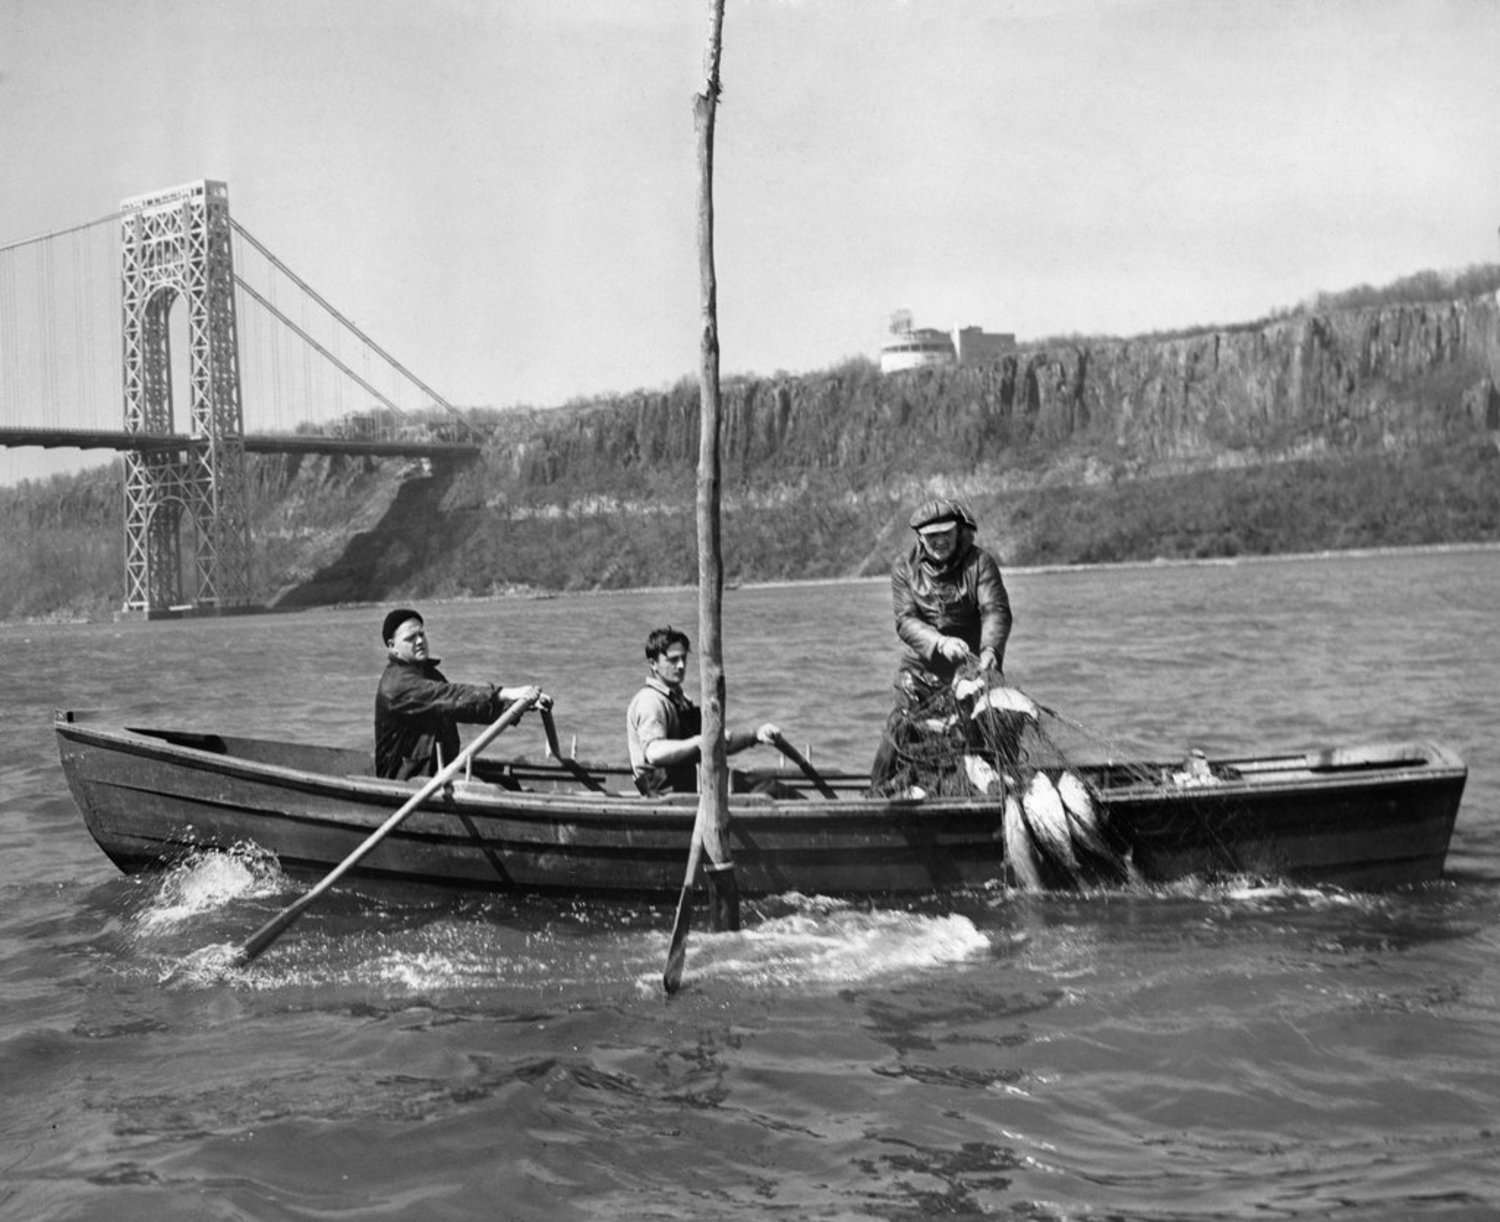 "April 18, 1947: ""In my forty-five years of shad fishing, this was the slowest season to get under way I've ever seen,"" said Harry E. Lyons, owner of the boat pictured, in The Times's News of Food. It warned that shad was ""an especially bony fish so that it is best to have the bones removed at the market. Some stores, such as the Gristede ones, bone most all the shad that they sell."" The article also included a recipe for baked stuffed shad that was ""Times-tested,"" as in ""tried in The New York Times kitchens."""